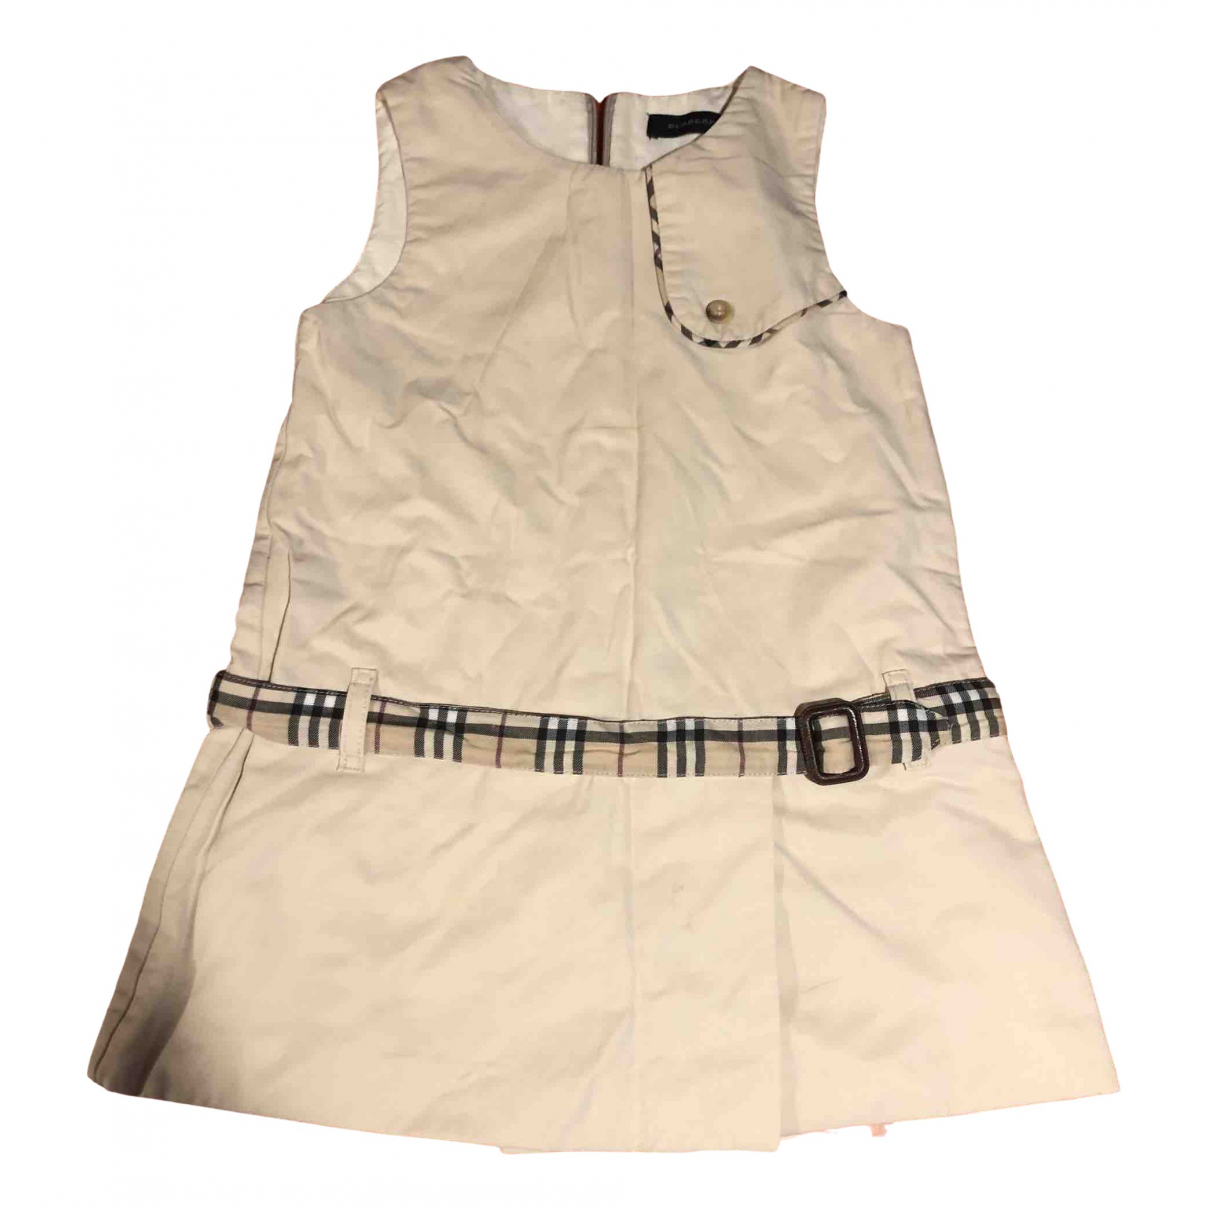 Burberry N White Cotton dress for Kids 2 years - until 34 inches UK